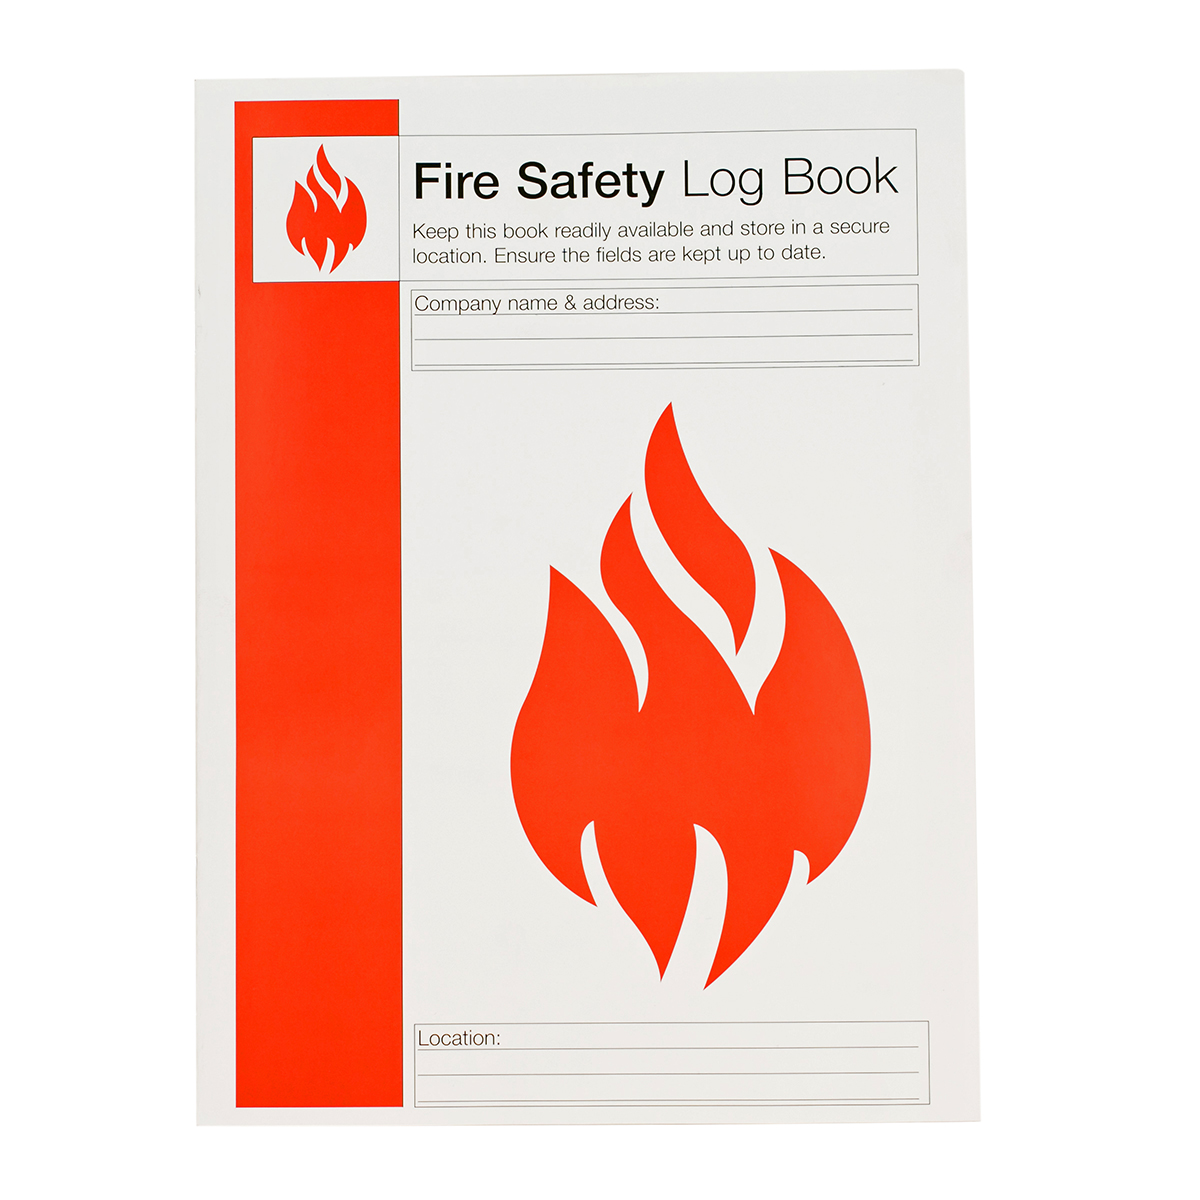 Fire Safety Log Book